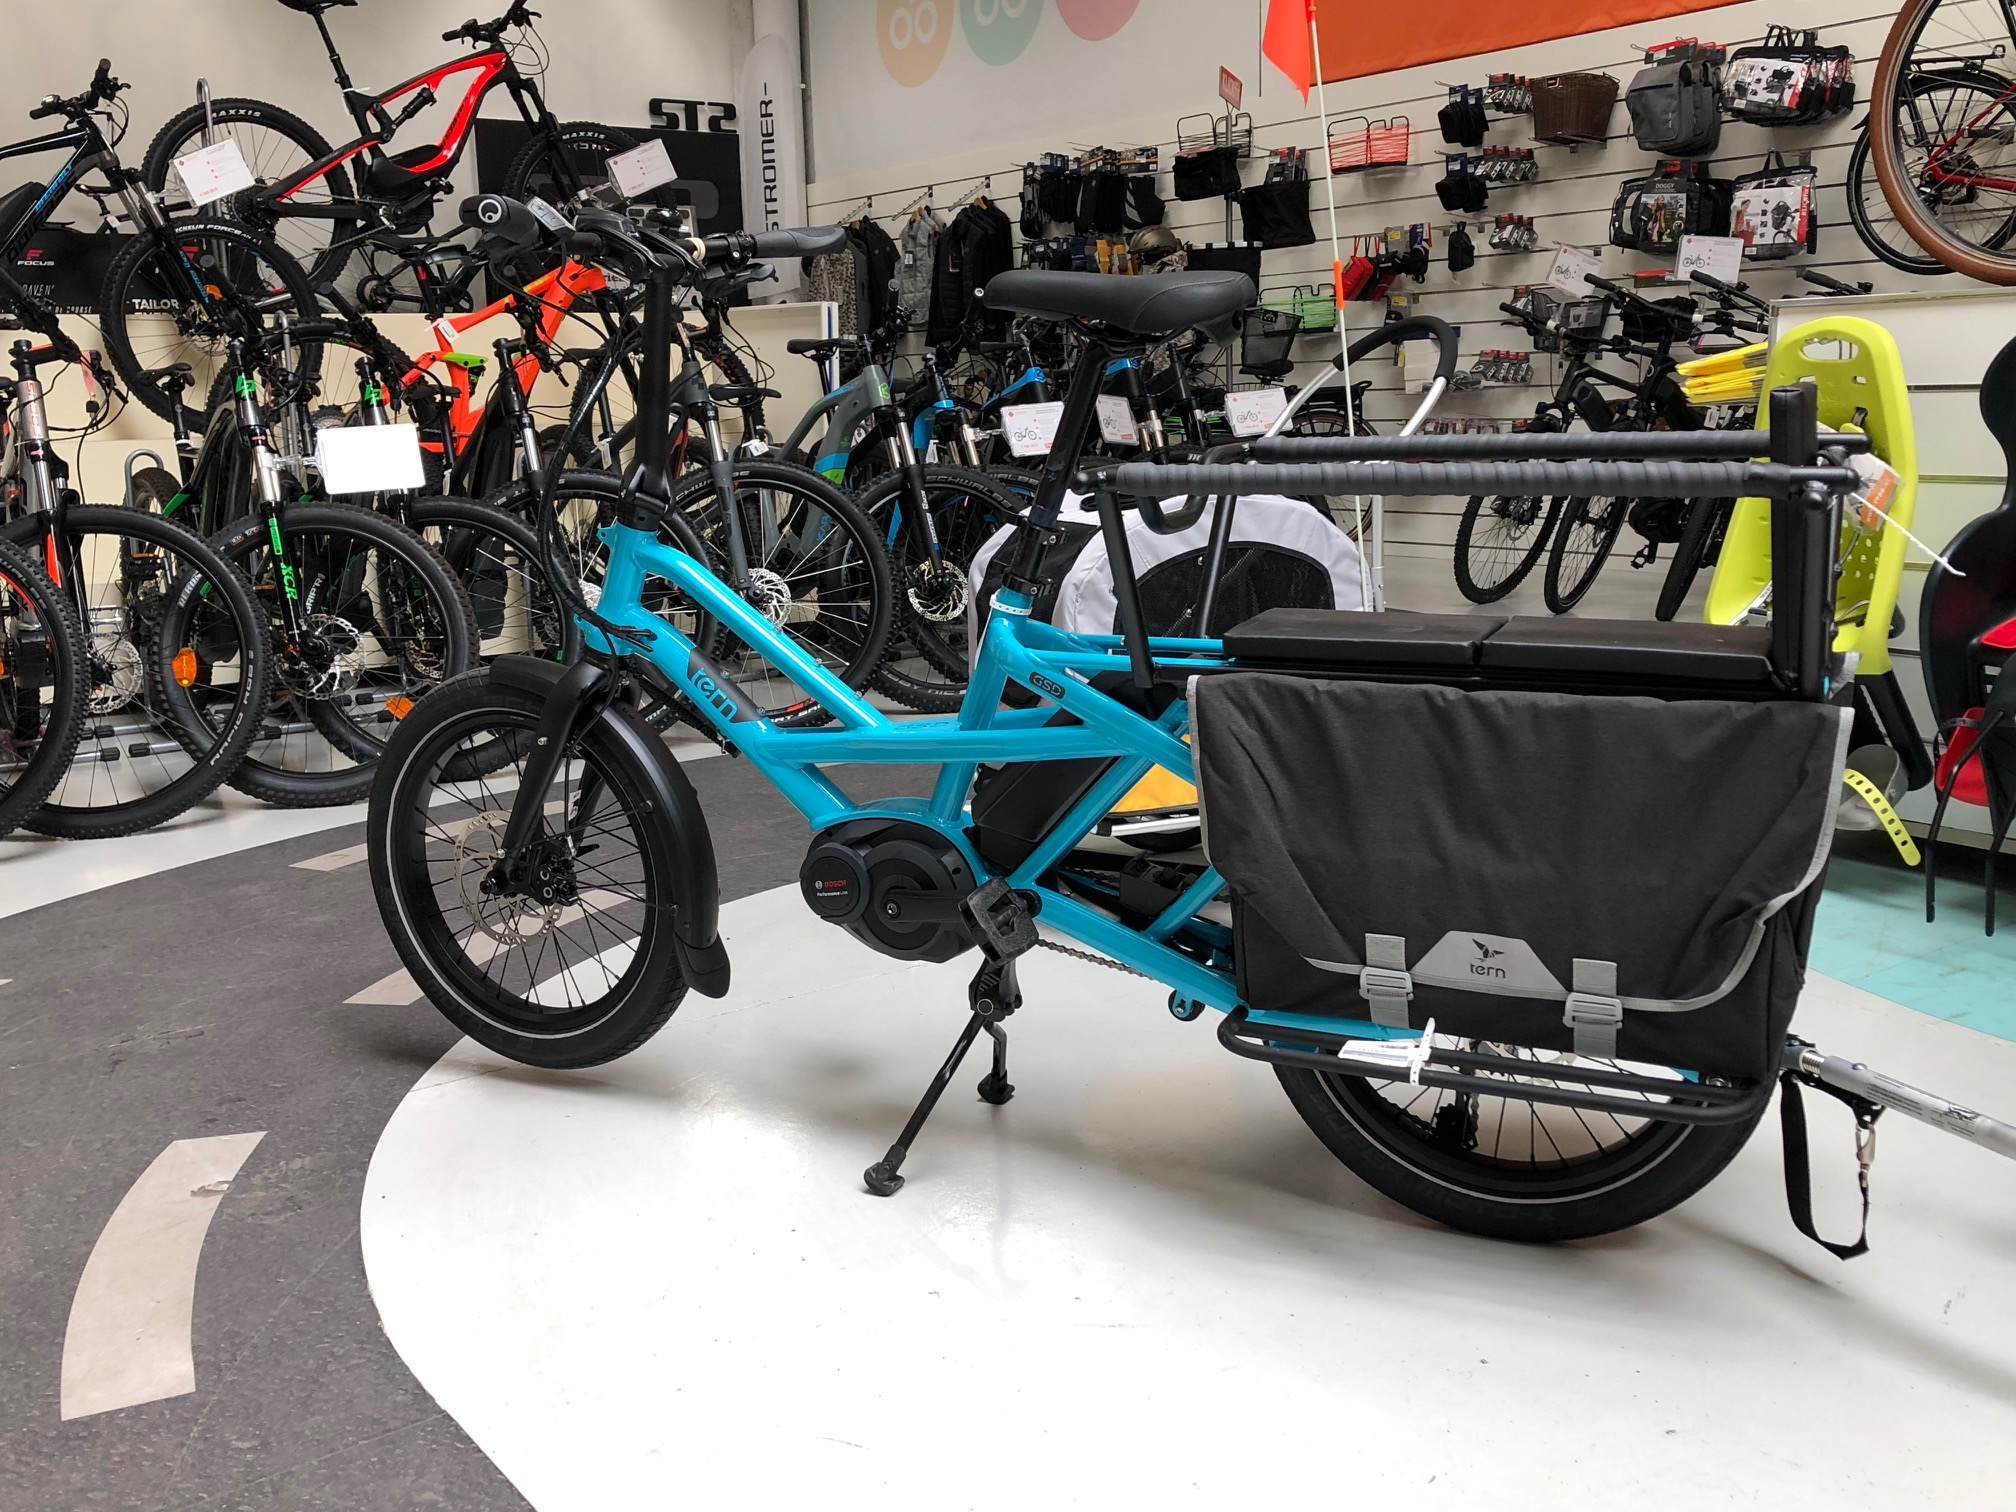 Altermove Cergy Pontoise - Tern GSD - Velo electrique Paris